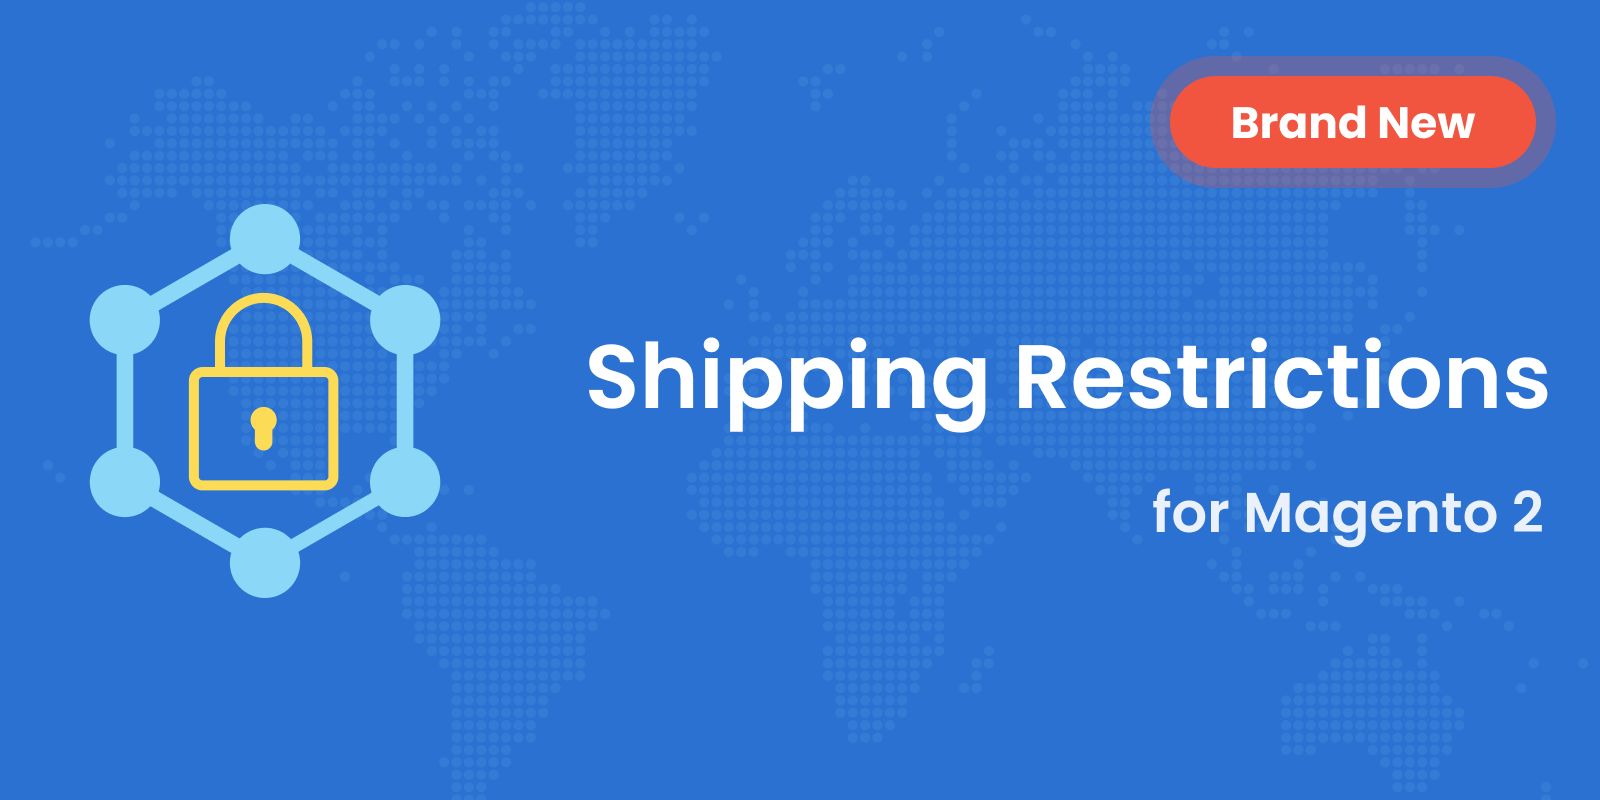 New Module: Magento 2 Shipping Restrictions